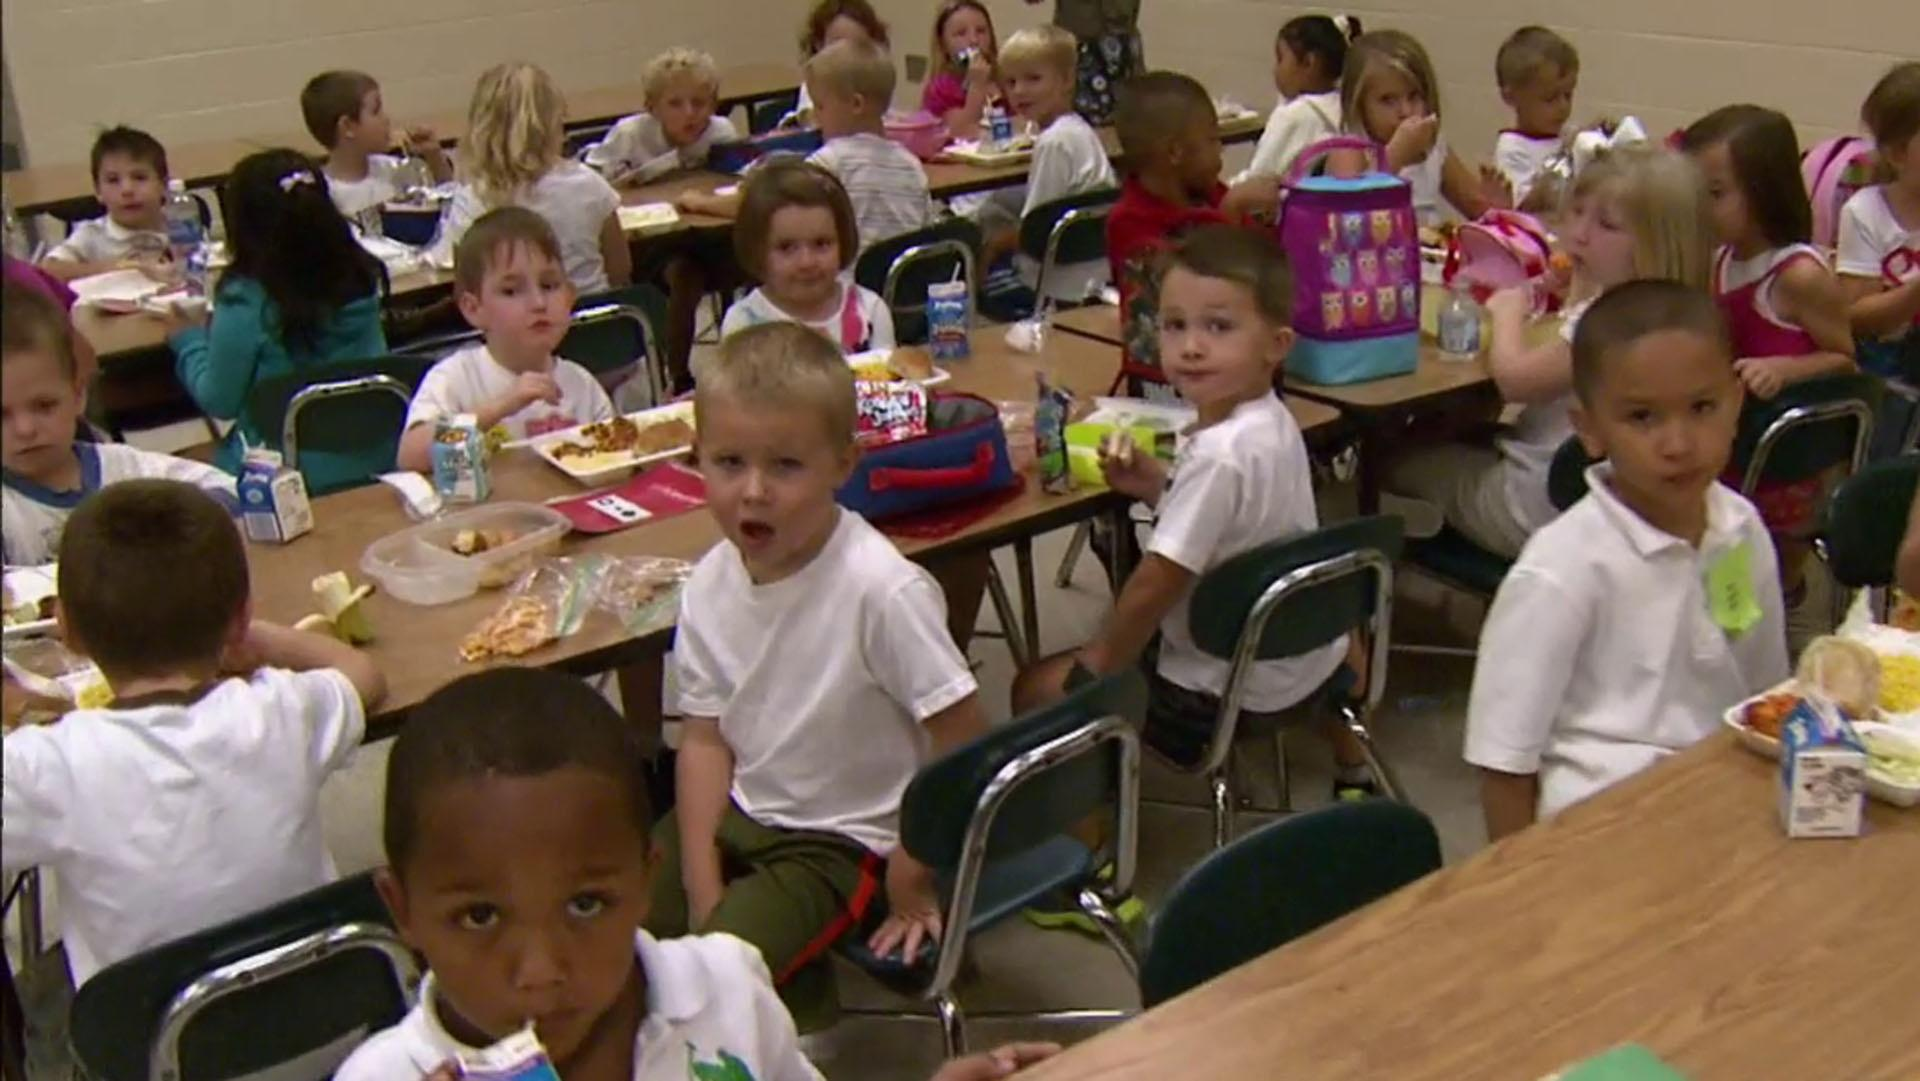 NC Now Special: Healthy Kids, Healthy Lives - Western NC 2 image